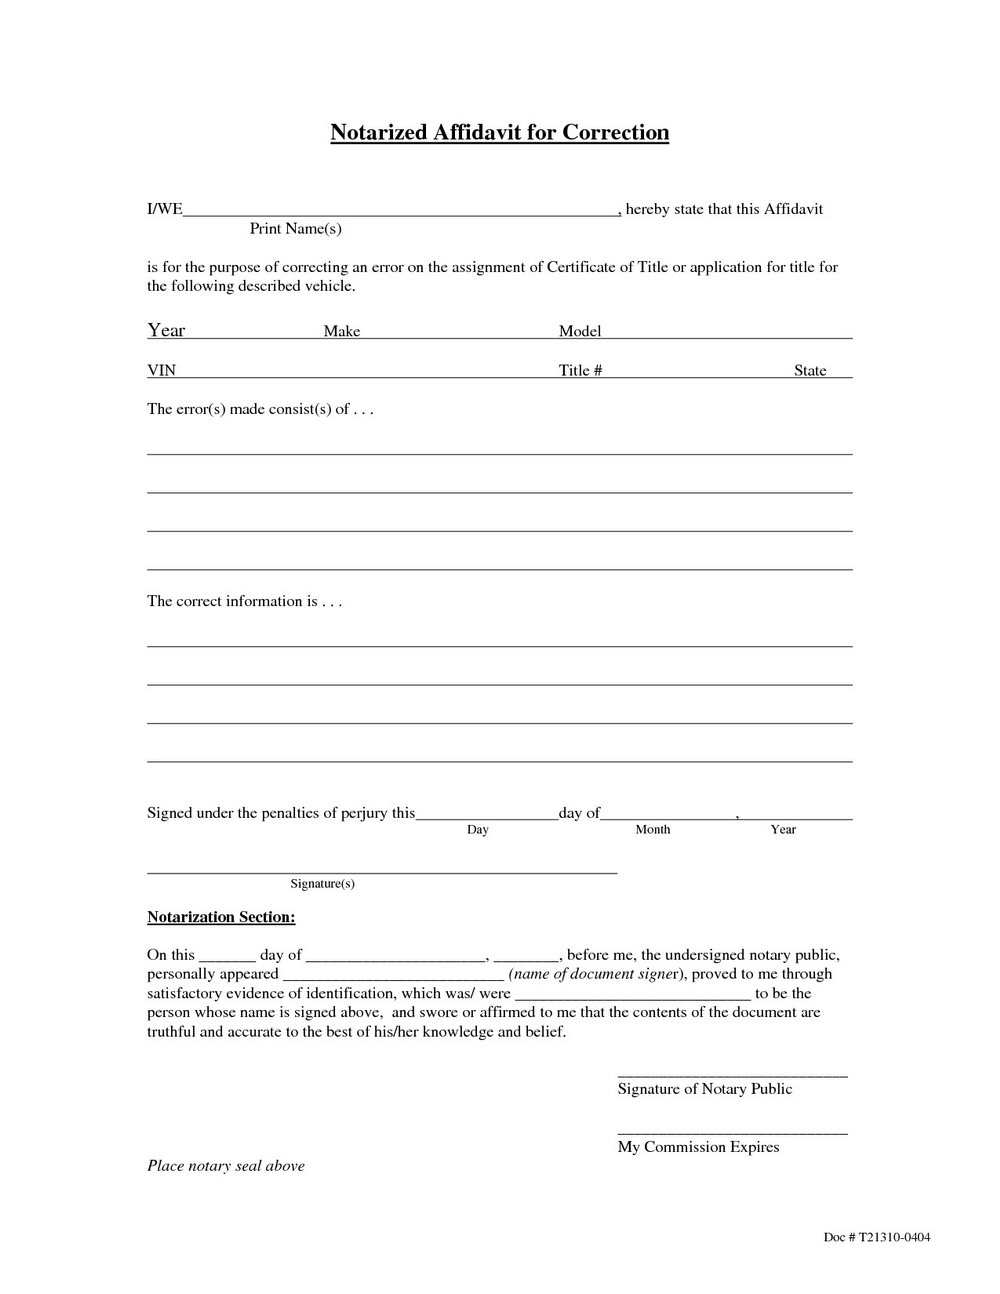 Notary Affidavit Form California